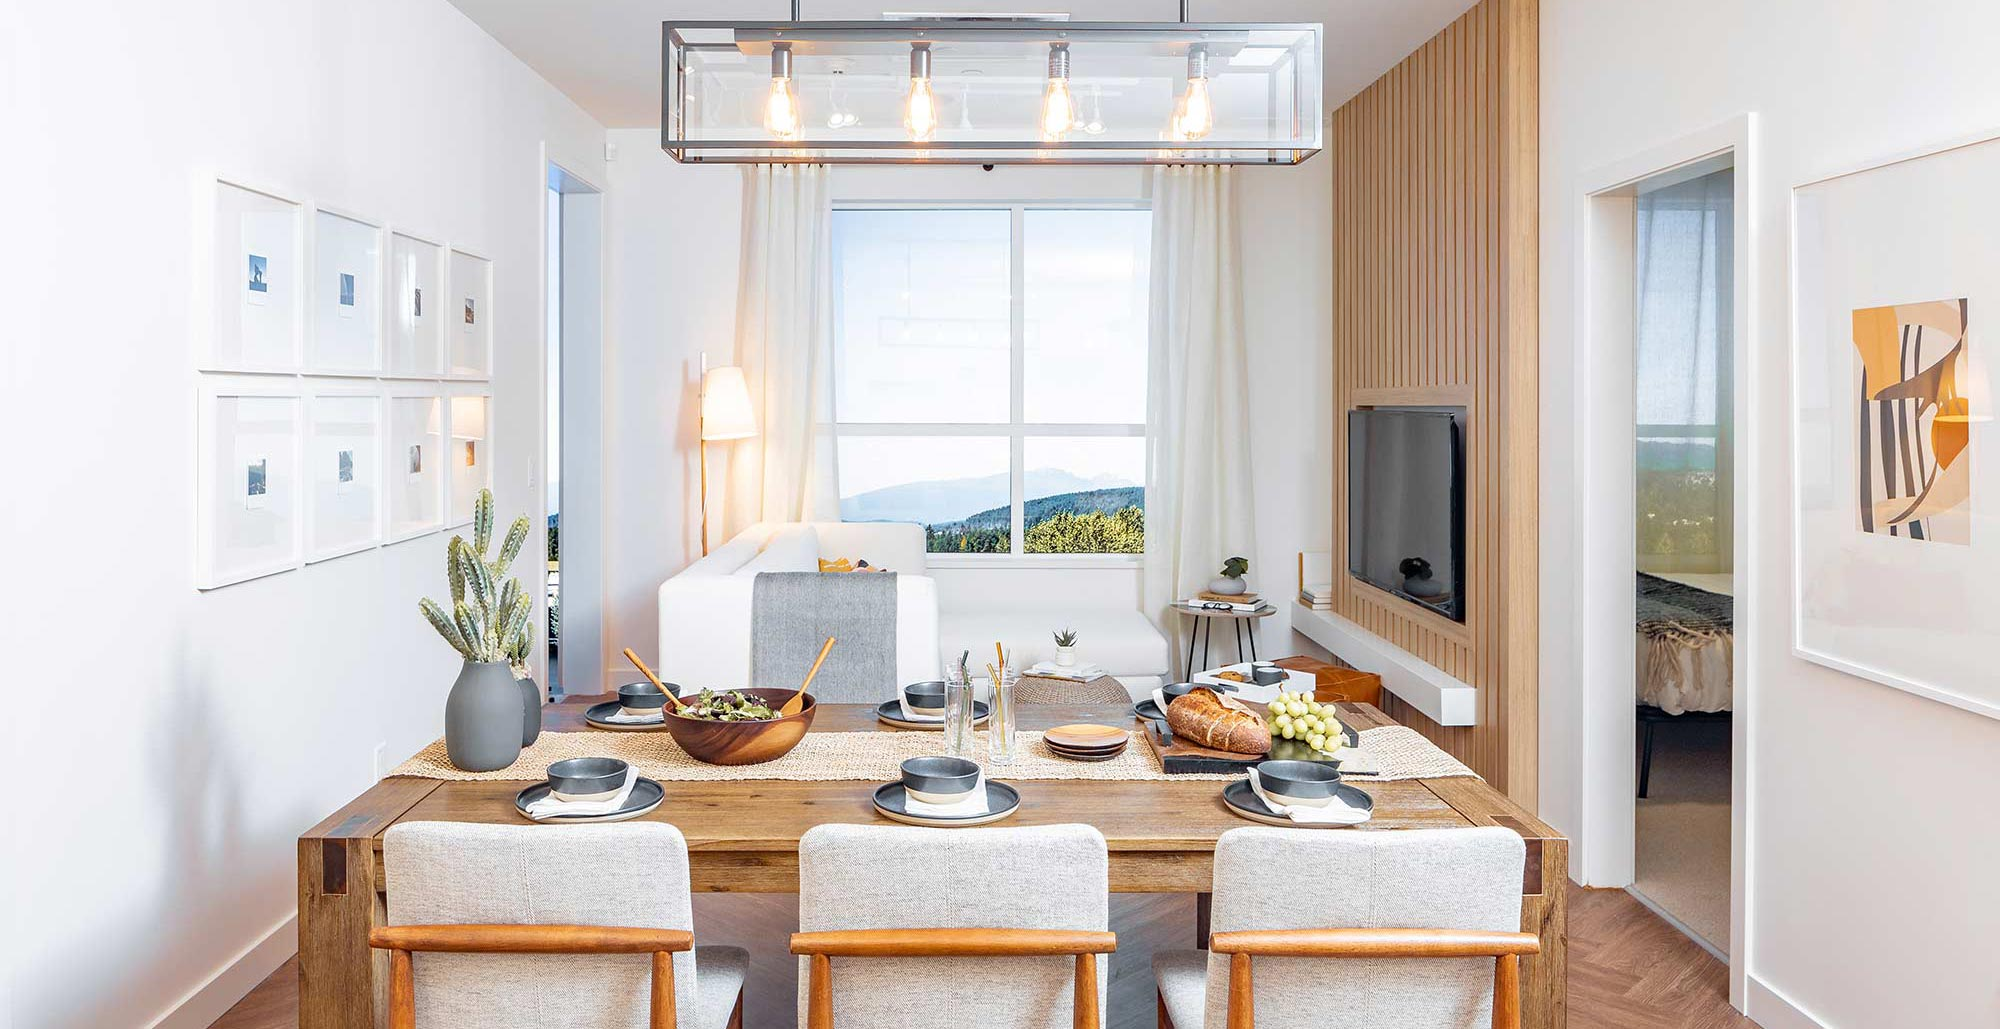 Clyde_Kitchen_Dining_Living